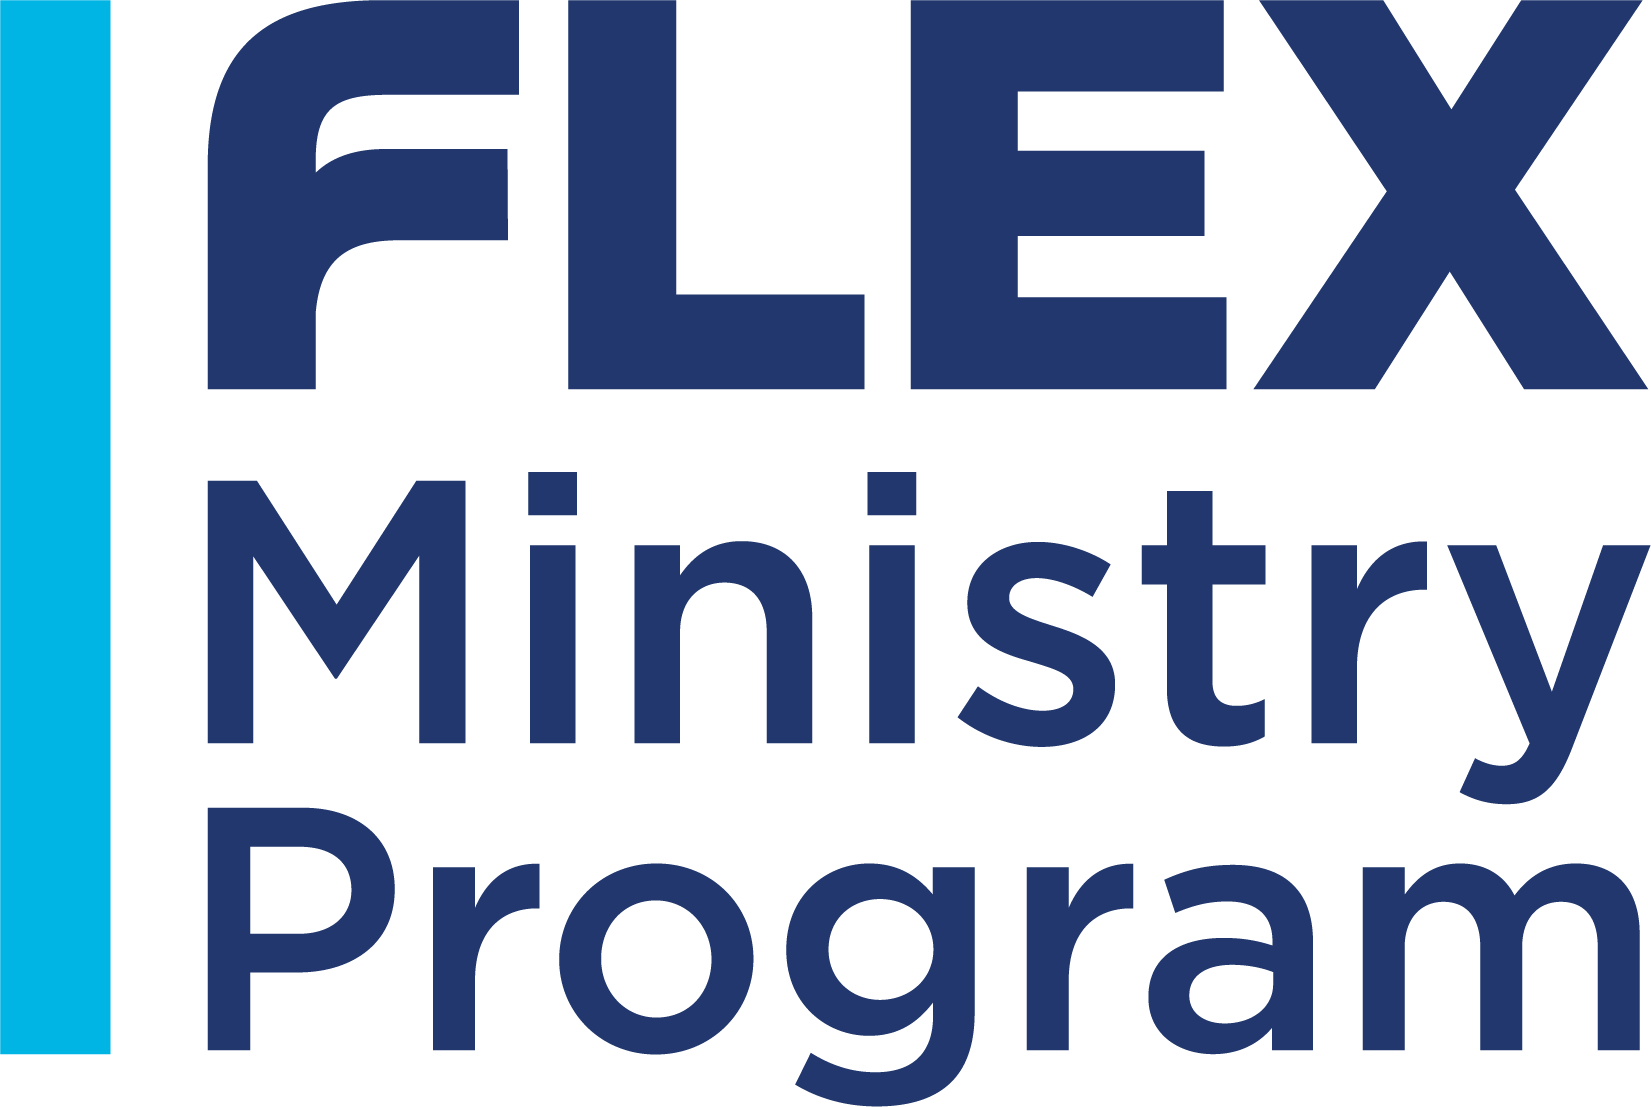 Flex Ministry Program logo